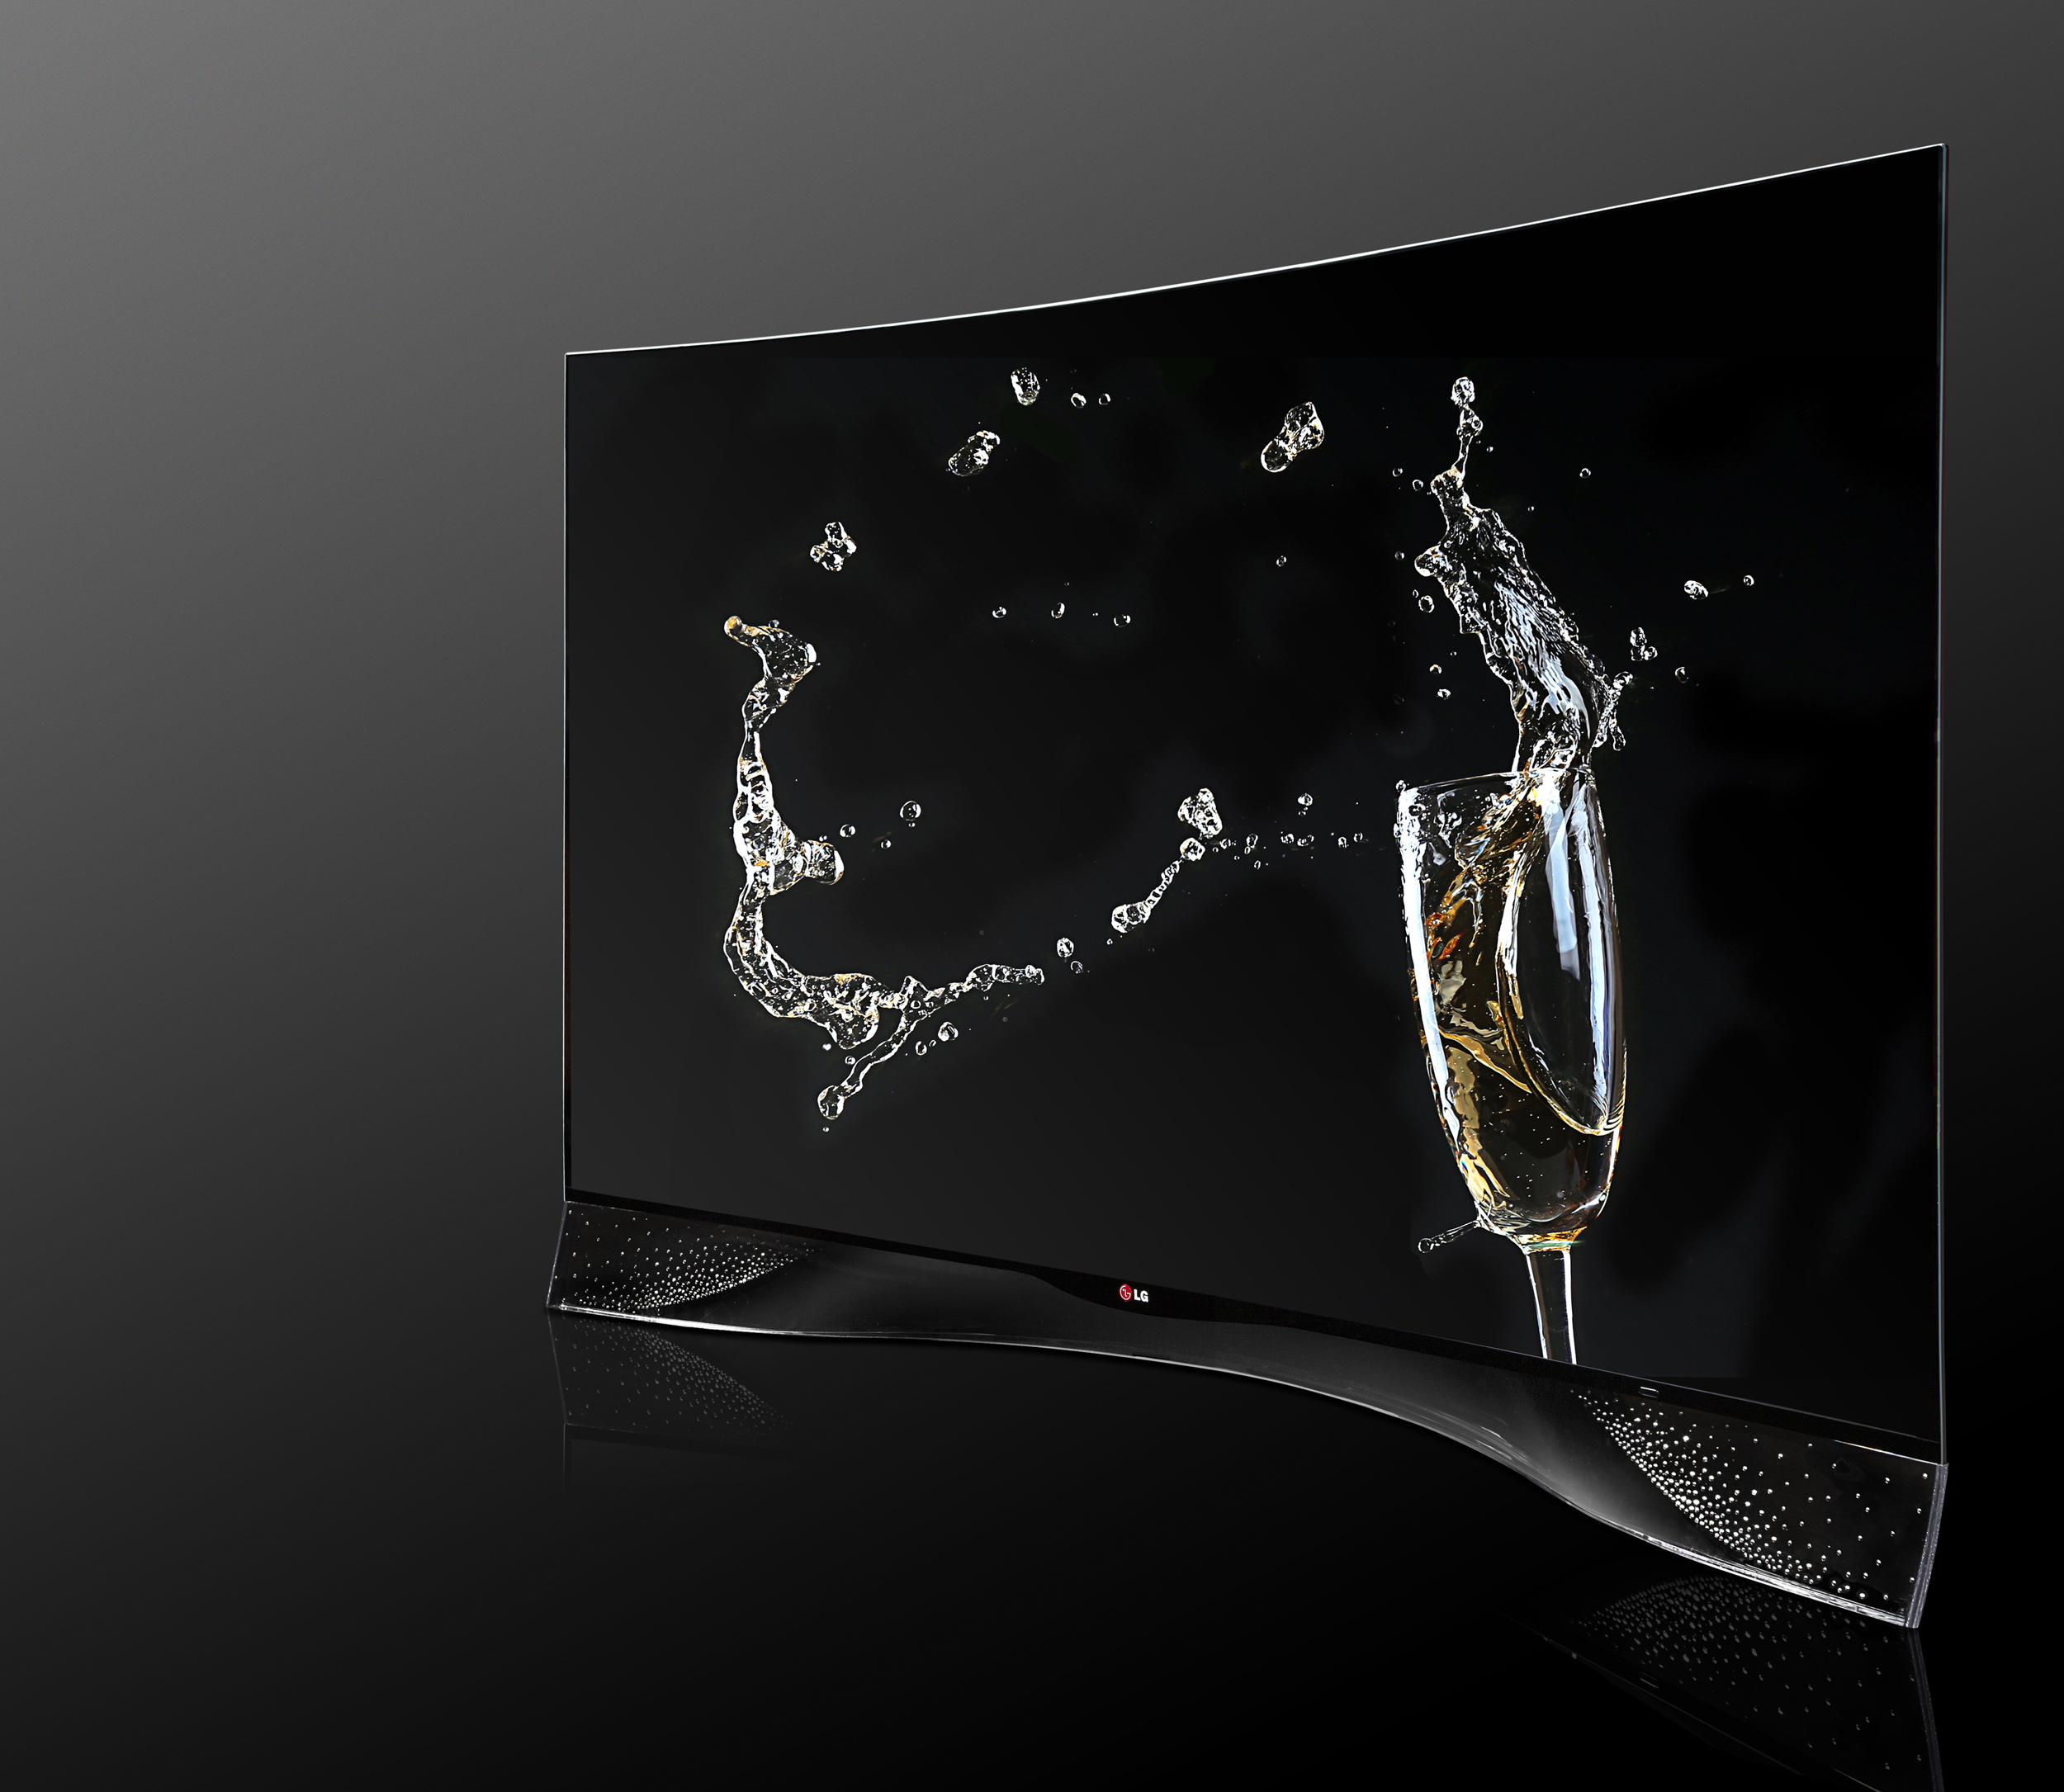 LG Electronics, with design support from Swarovski, the renowned Austrian jewelry brand and world-leading manufacturer of high-quality crystals, will unveil a one-of-a-kind CURVED OLED TV at IFA Berlin. (image credit: LG Electronics)